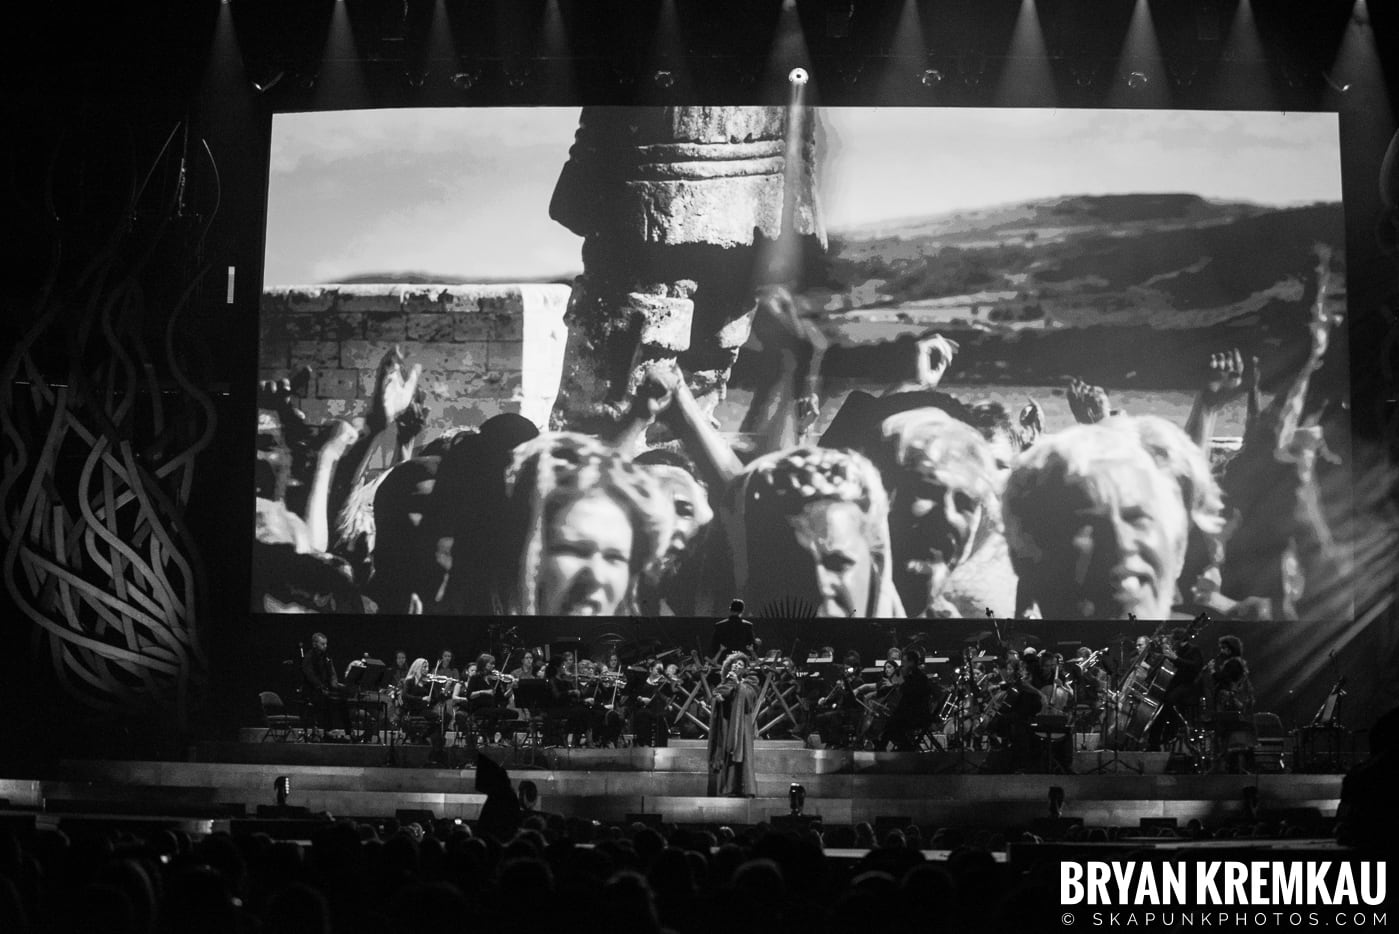 Game of Thrones Live Experience @ Prudential Center, Newark, NJ - 9.26.18 (2)